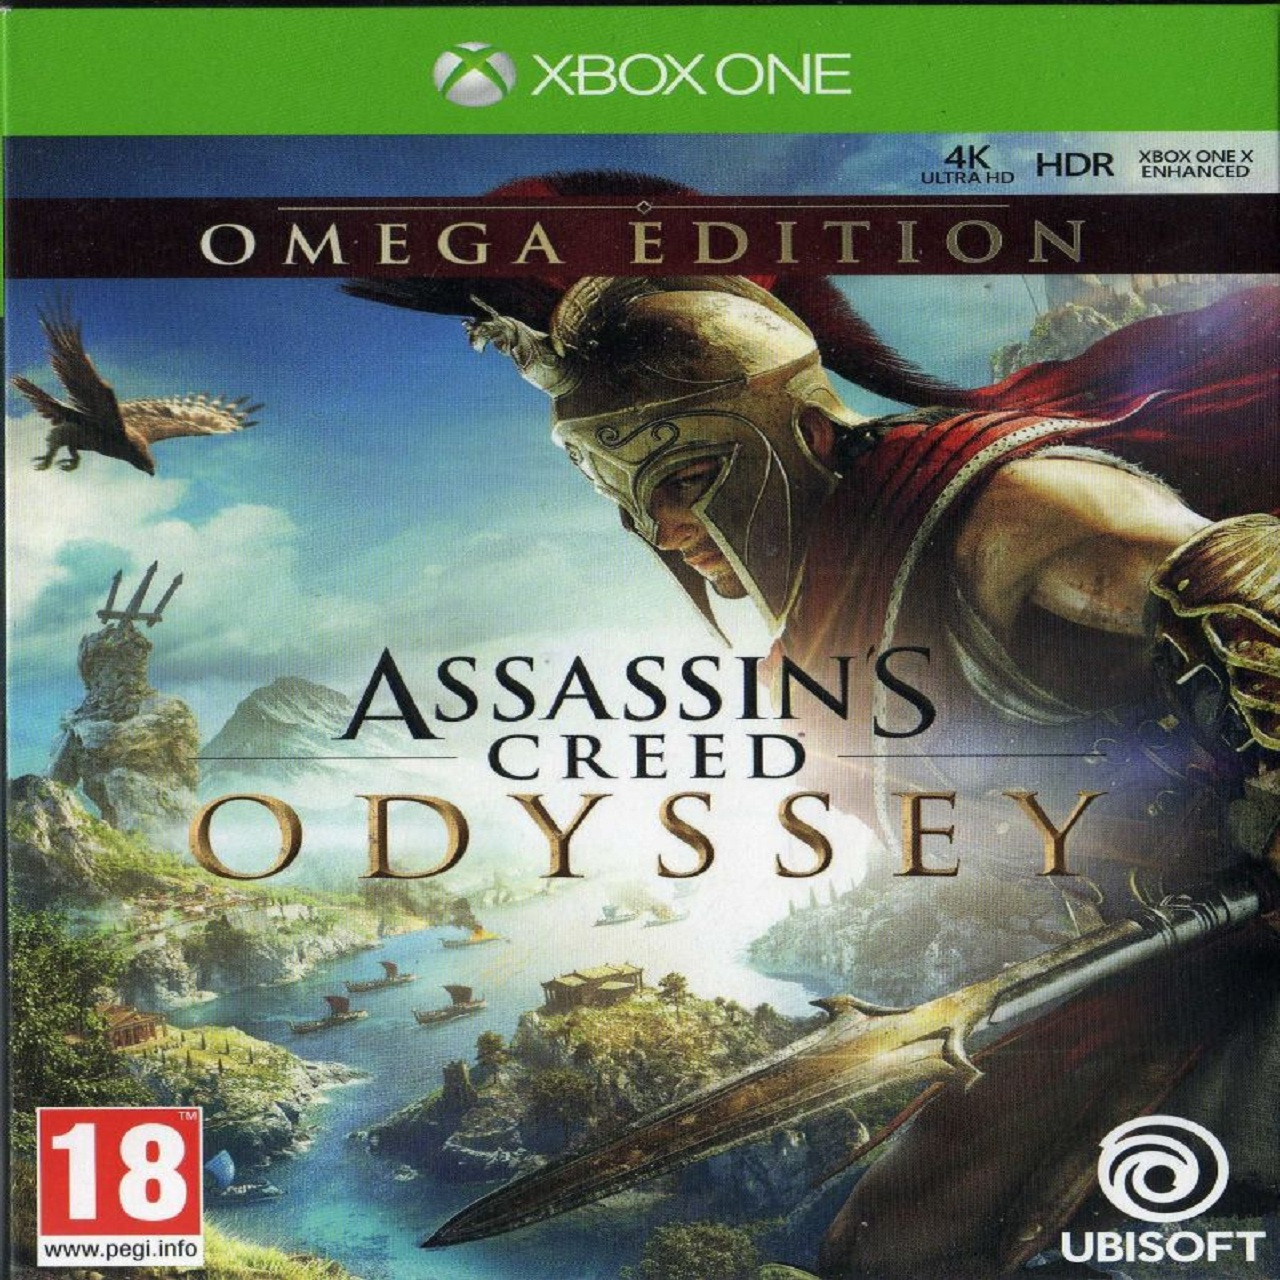 Assassin's Creed Odyssey Omega Edition RUS XBOX ONE (NEW)